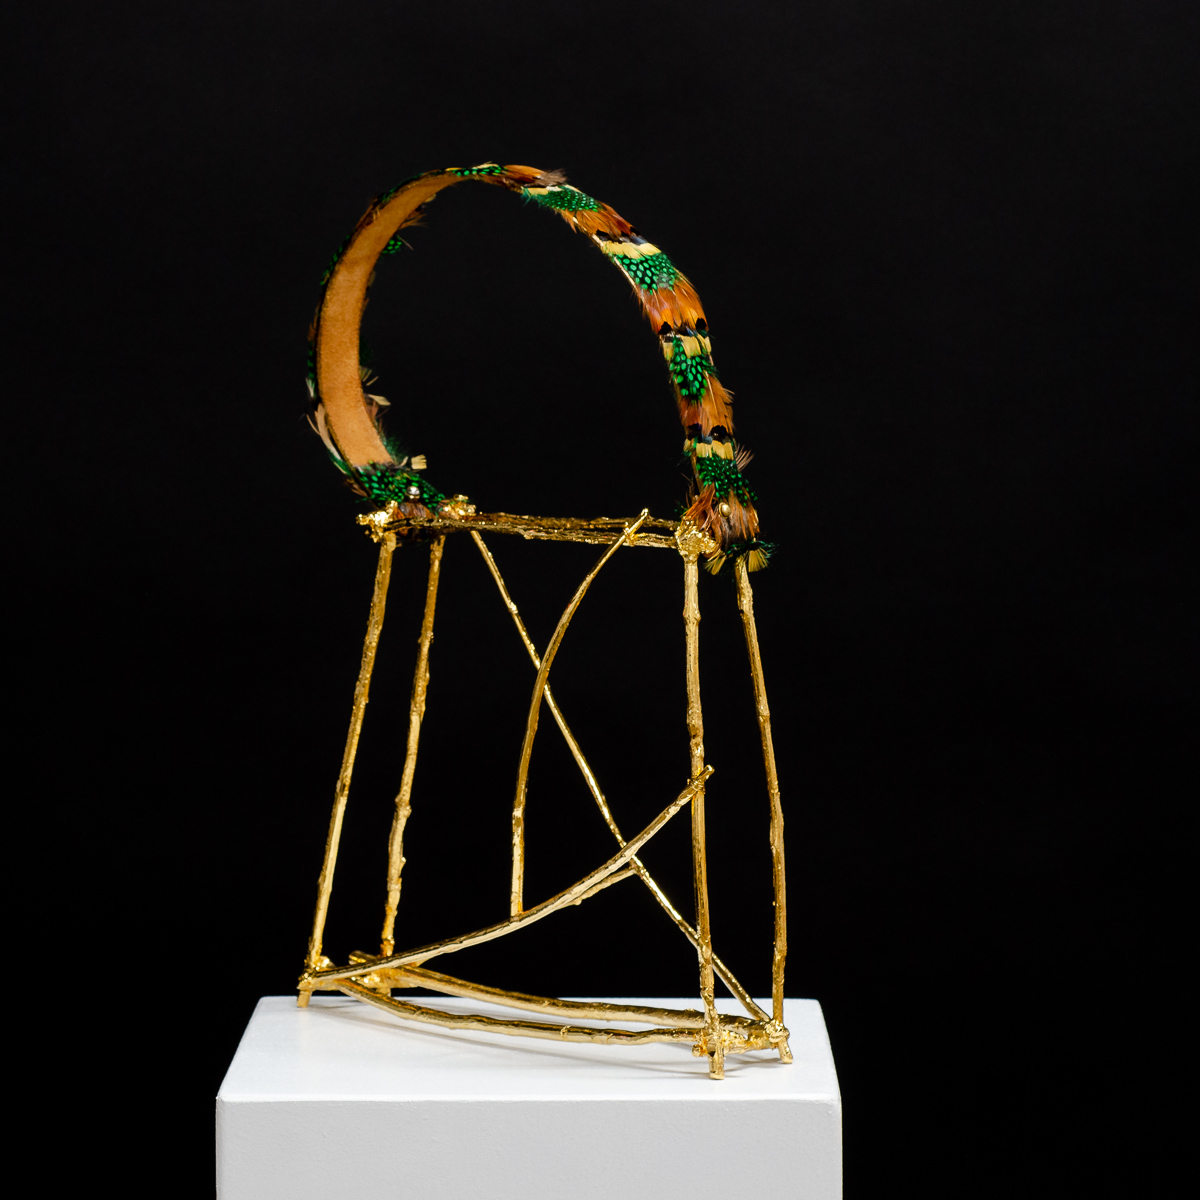 Sculpture by Beatriz Gerenstein. Handbag made in Bronze, 24K Gold, and exotic feathers